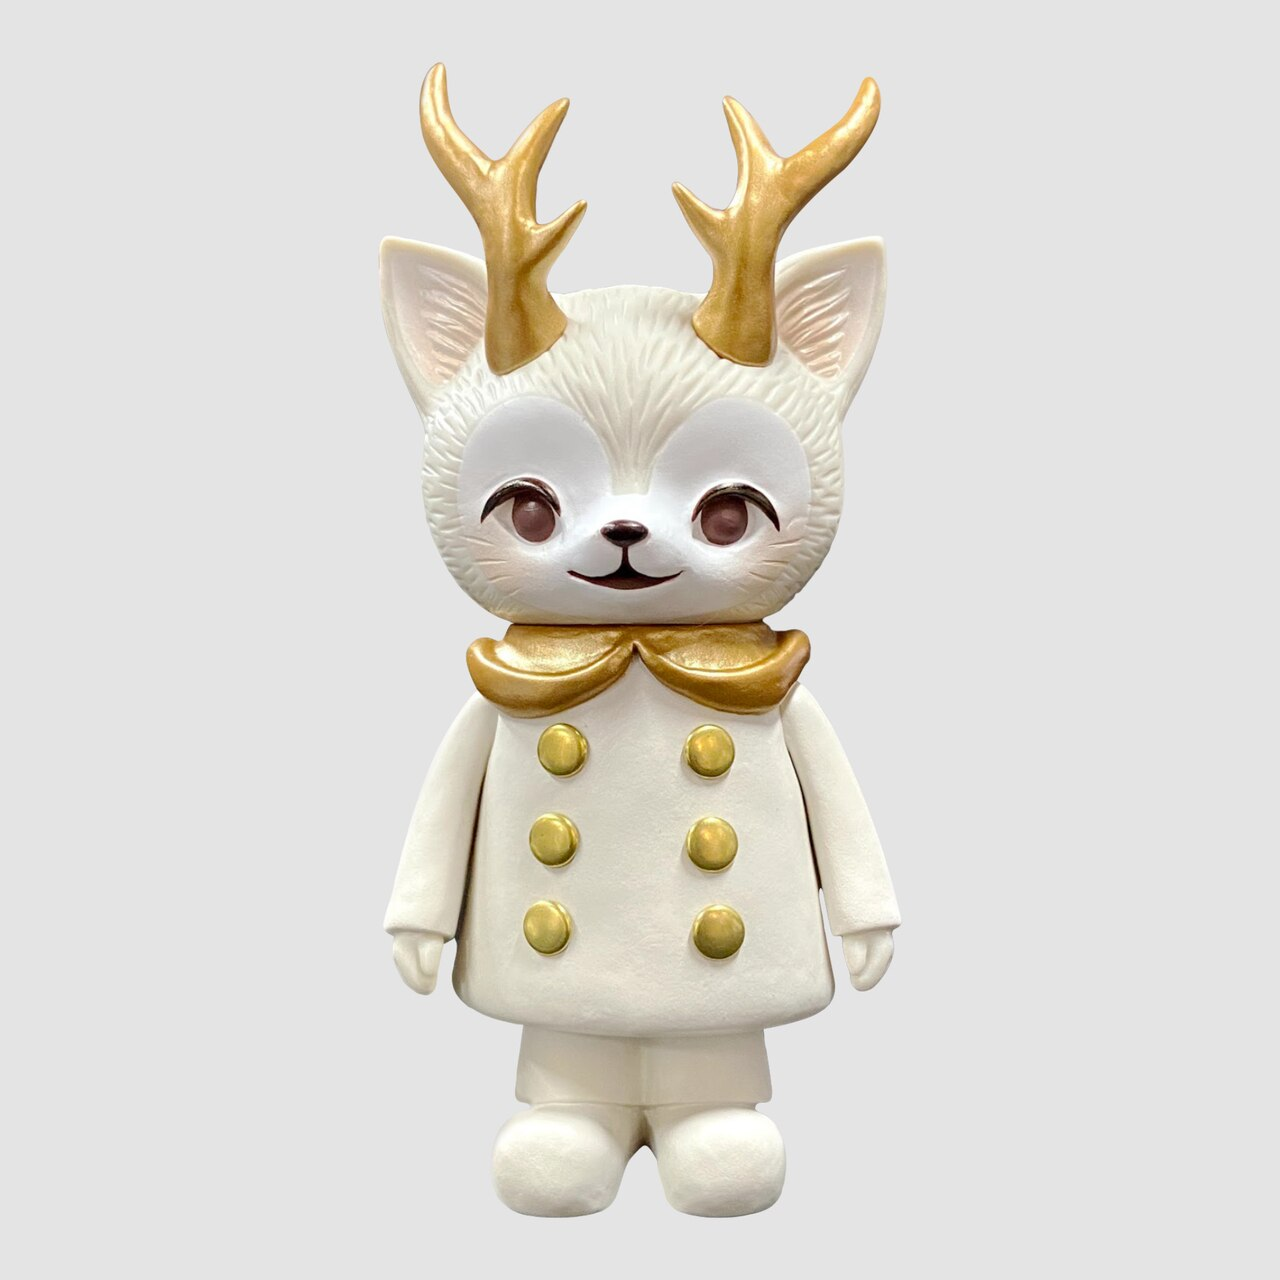 Kaori Hinata - White Morris The Cat with Antlers Limited Edition